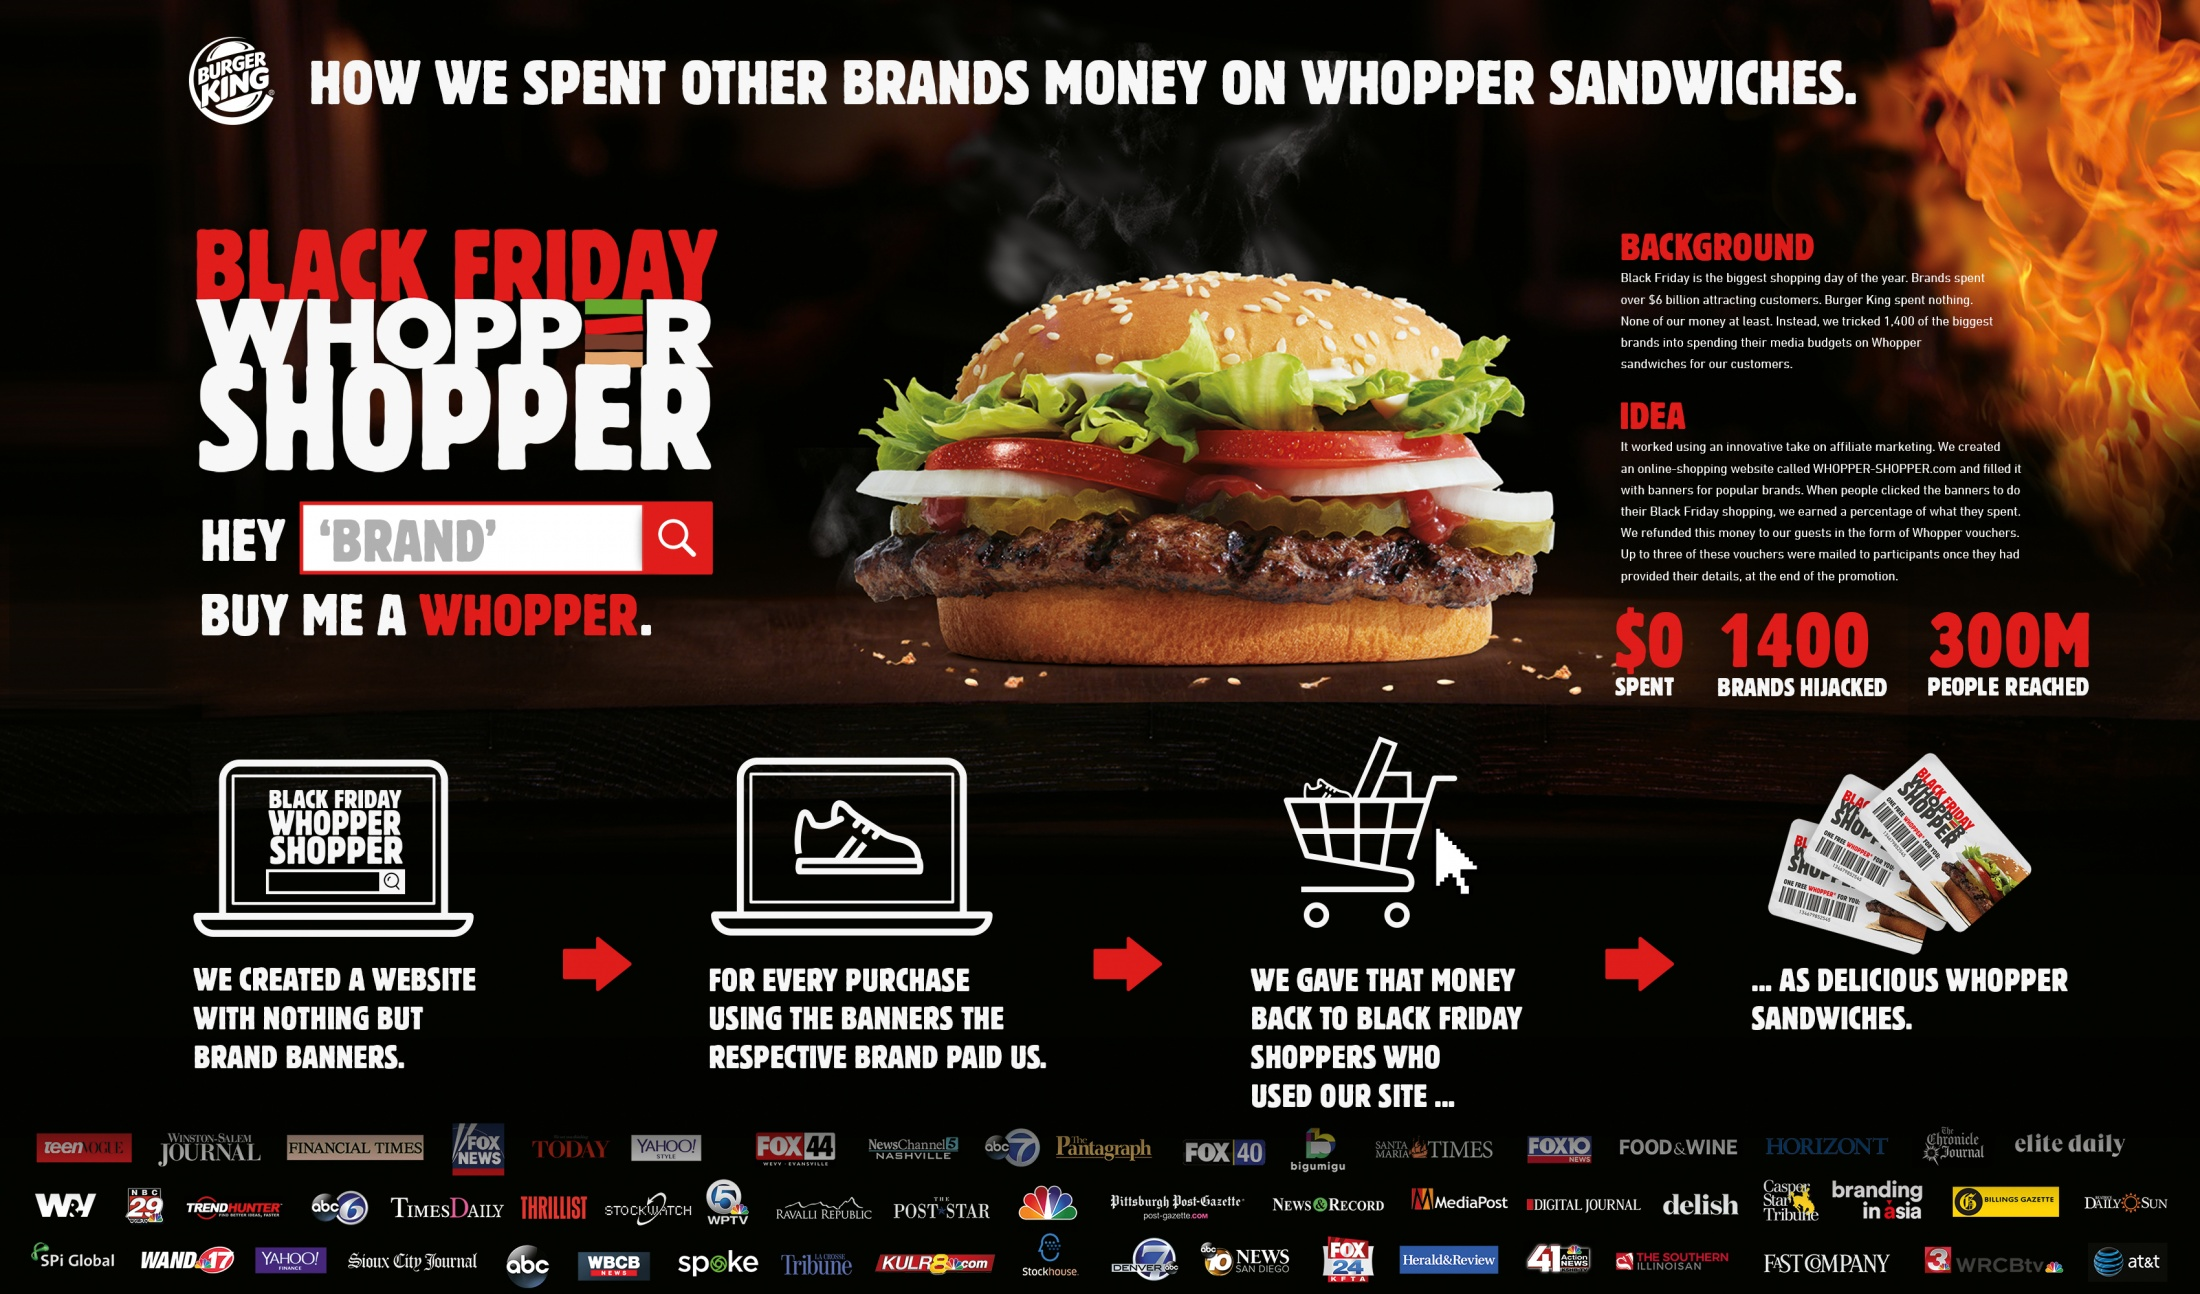 Thumbnail for Black Friday Whopper Shopper